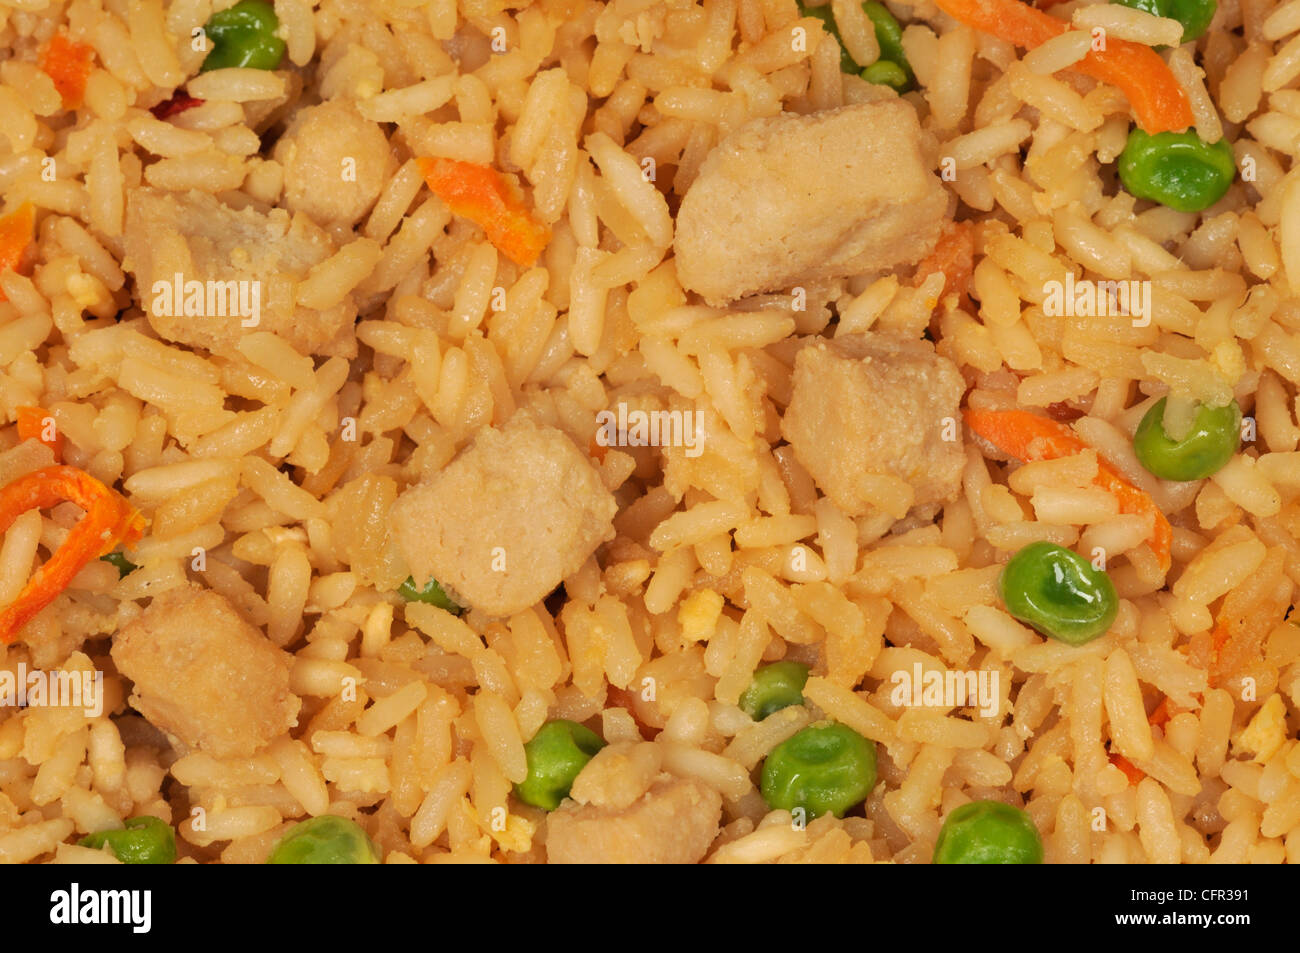 Close-up macro of chicken fried rice with vegetables - Stock Image